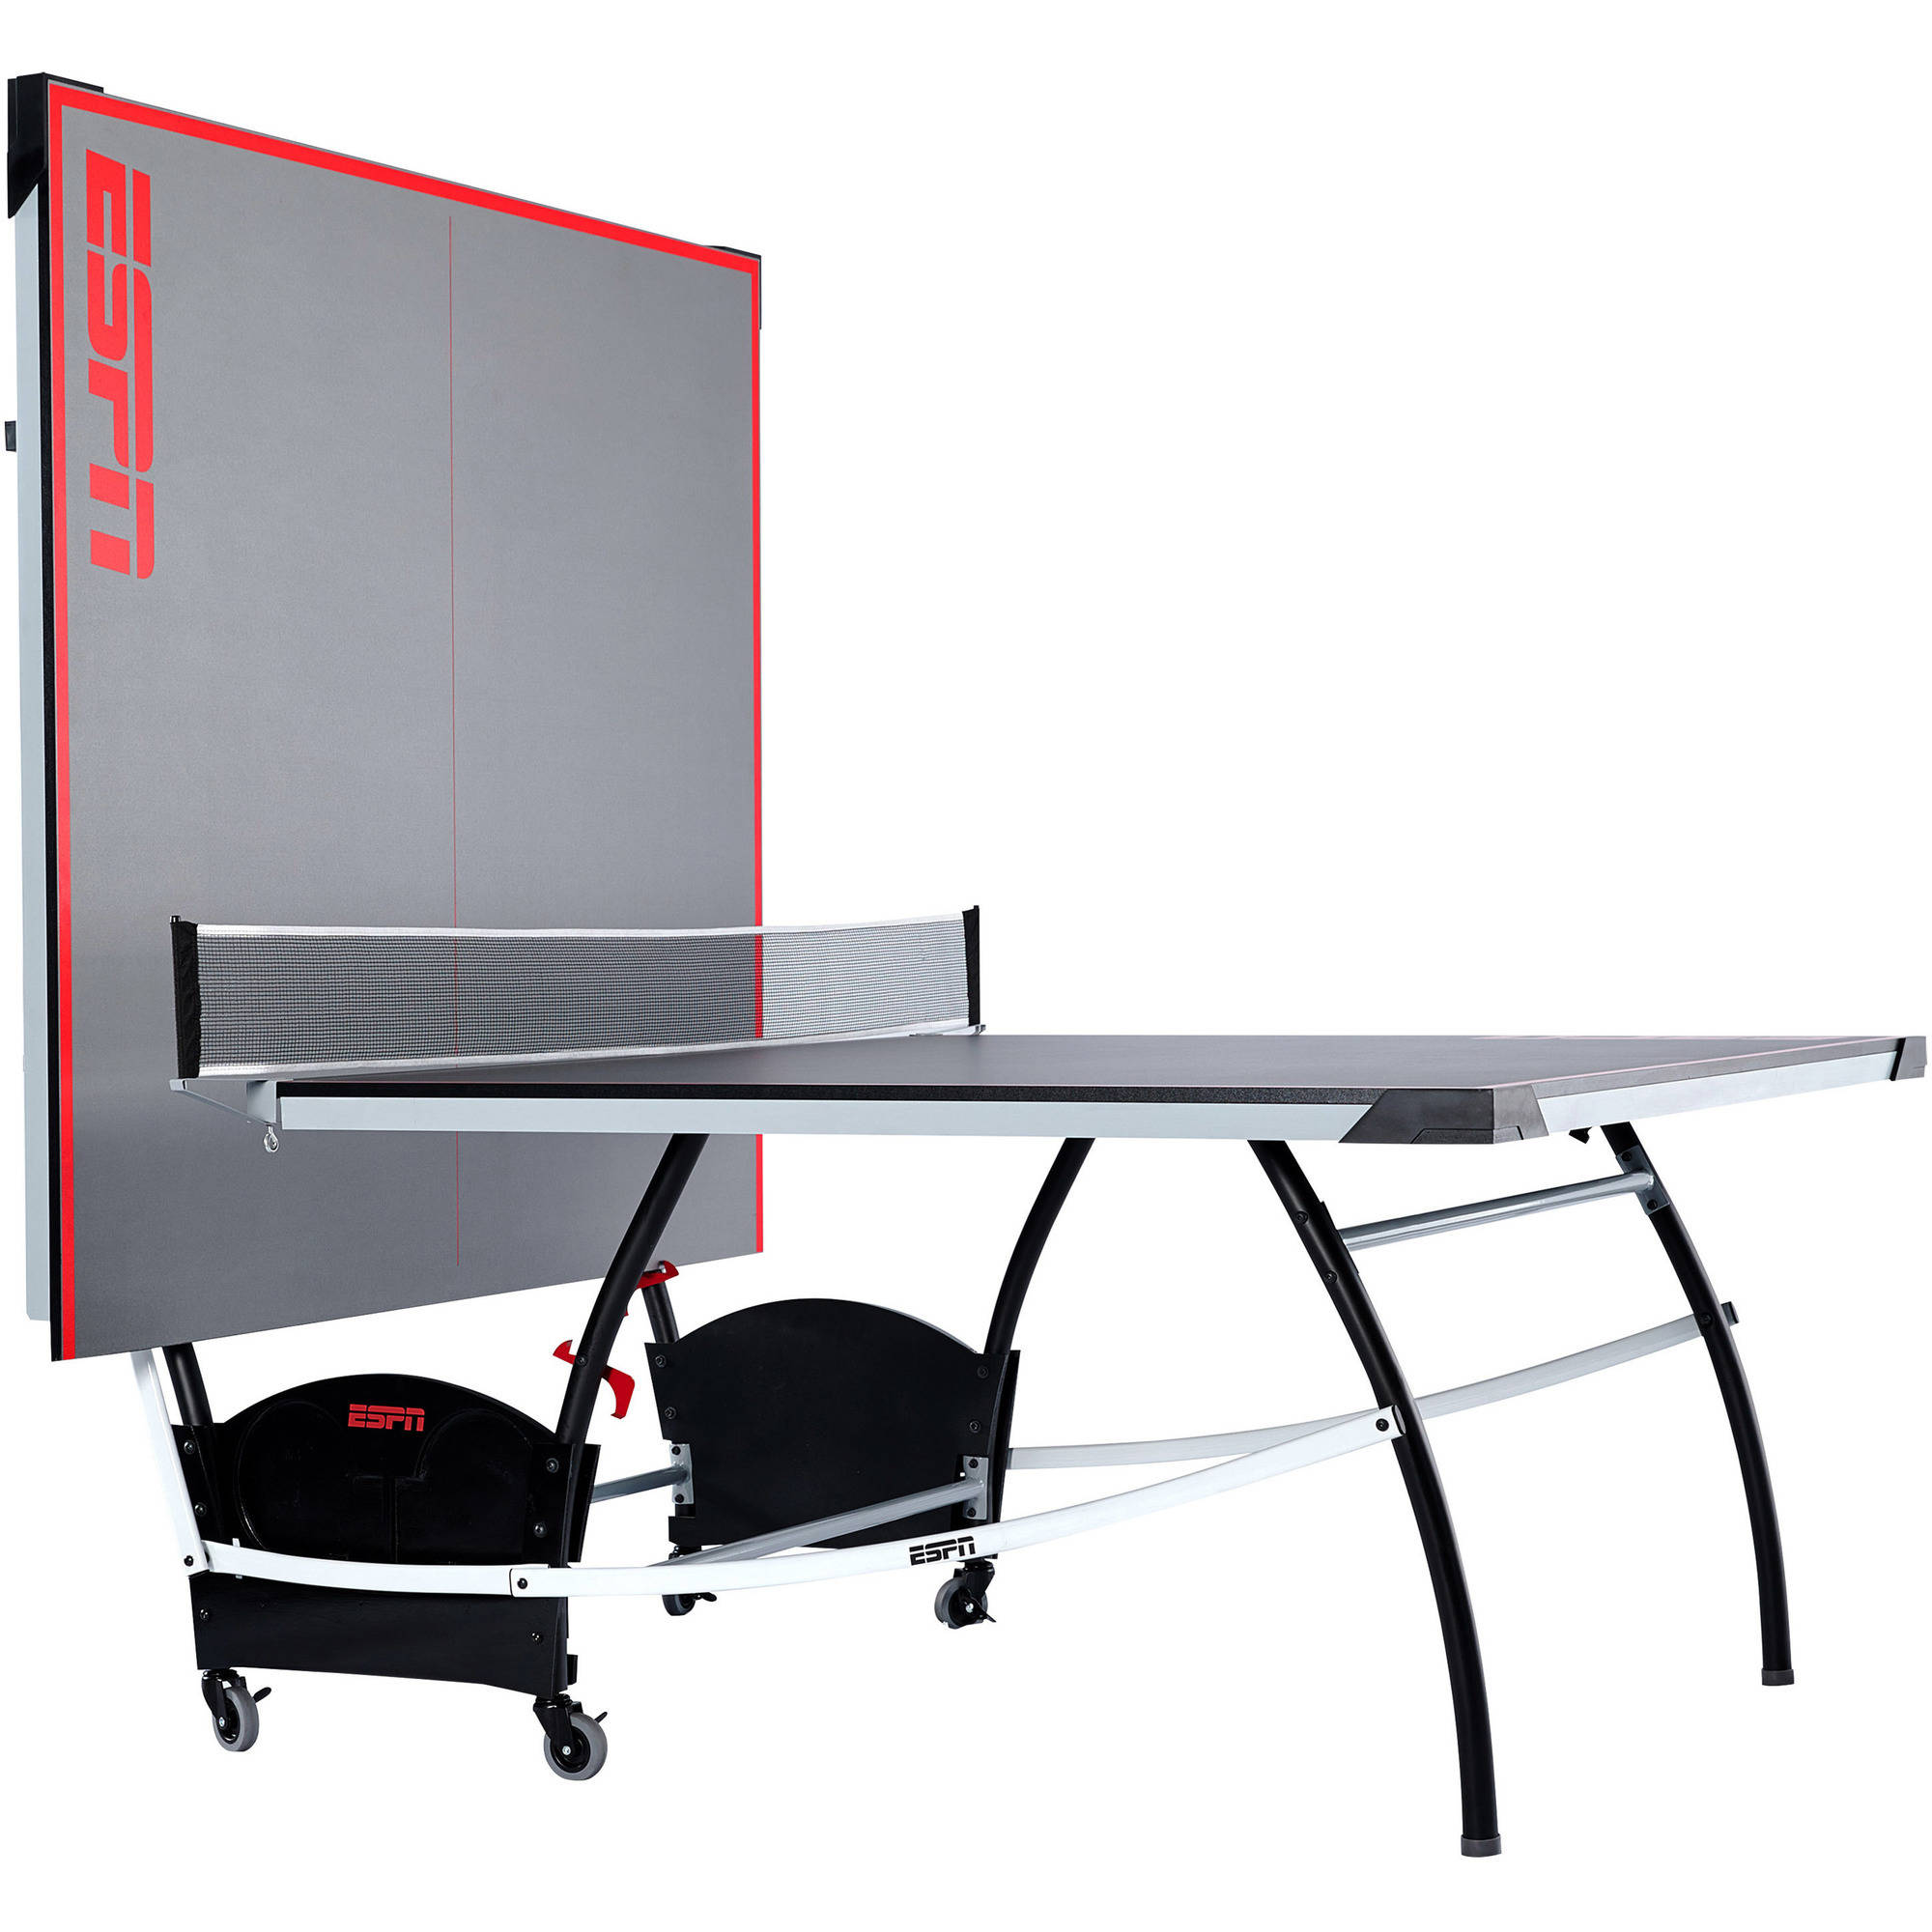 ESPN Official Size Table Tennis Table With Built In Accessory Storage Space